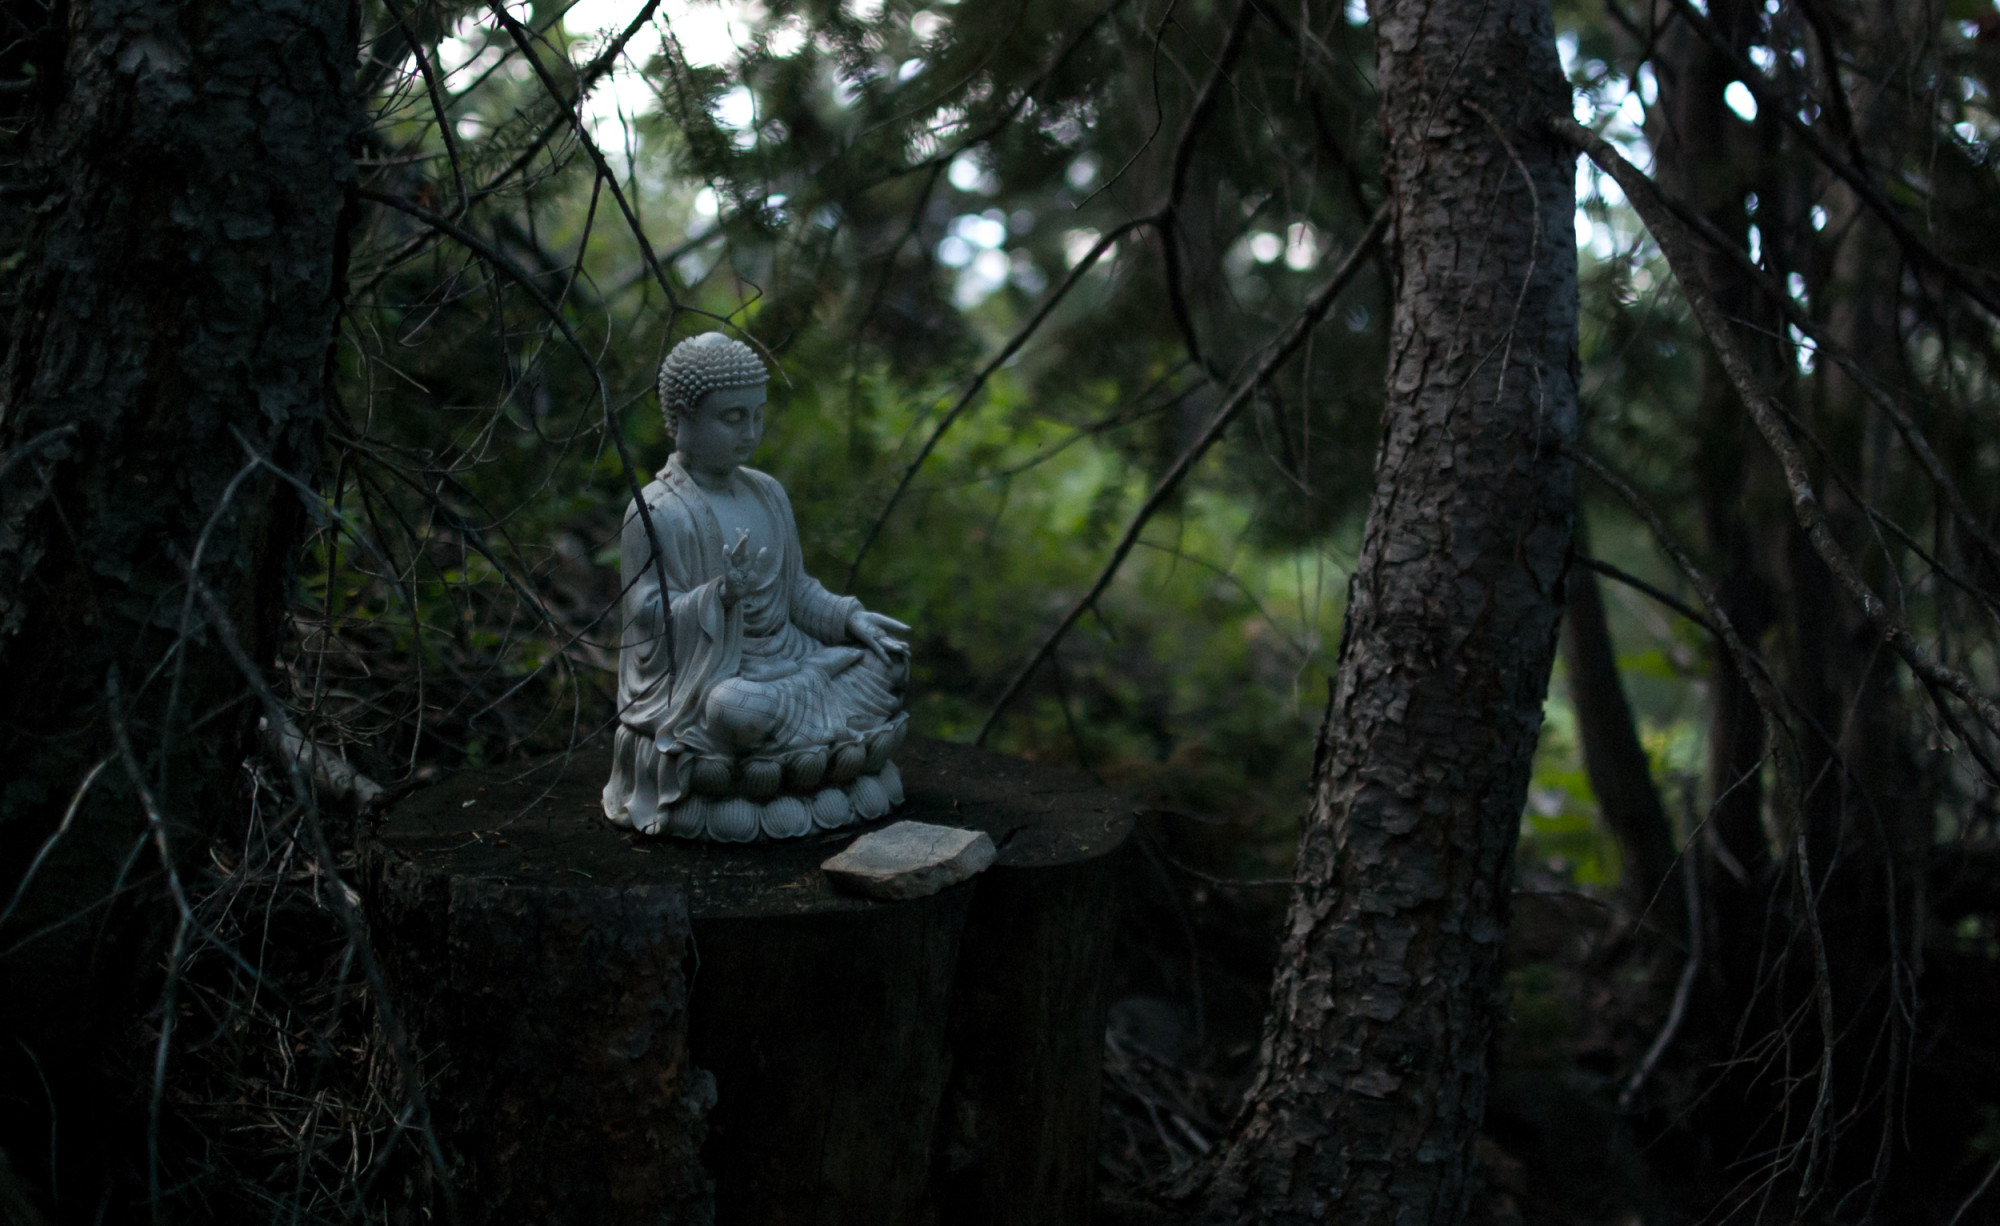 Buddha statue surrounded by trees